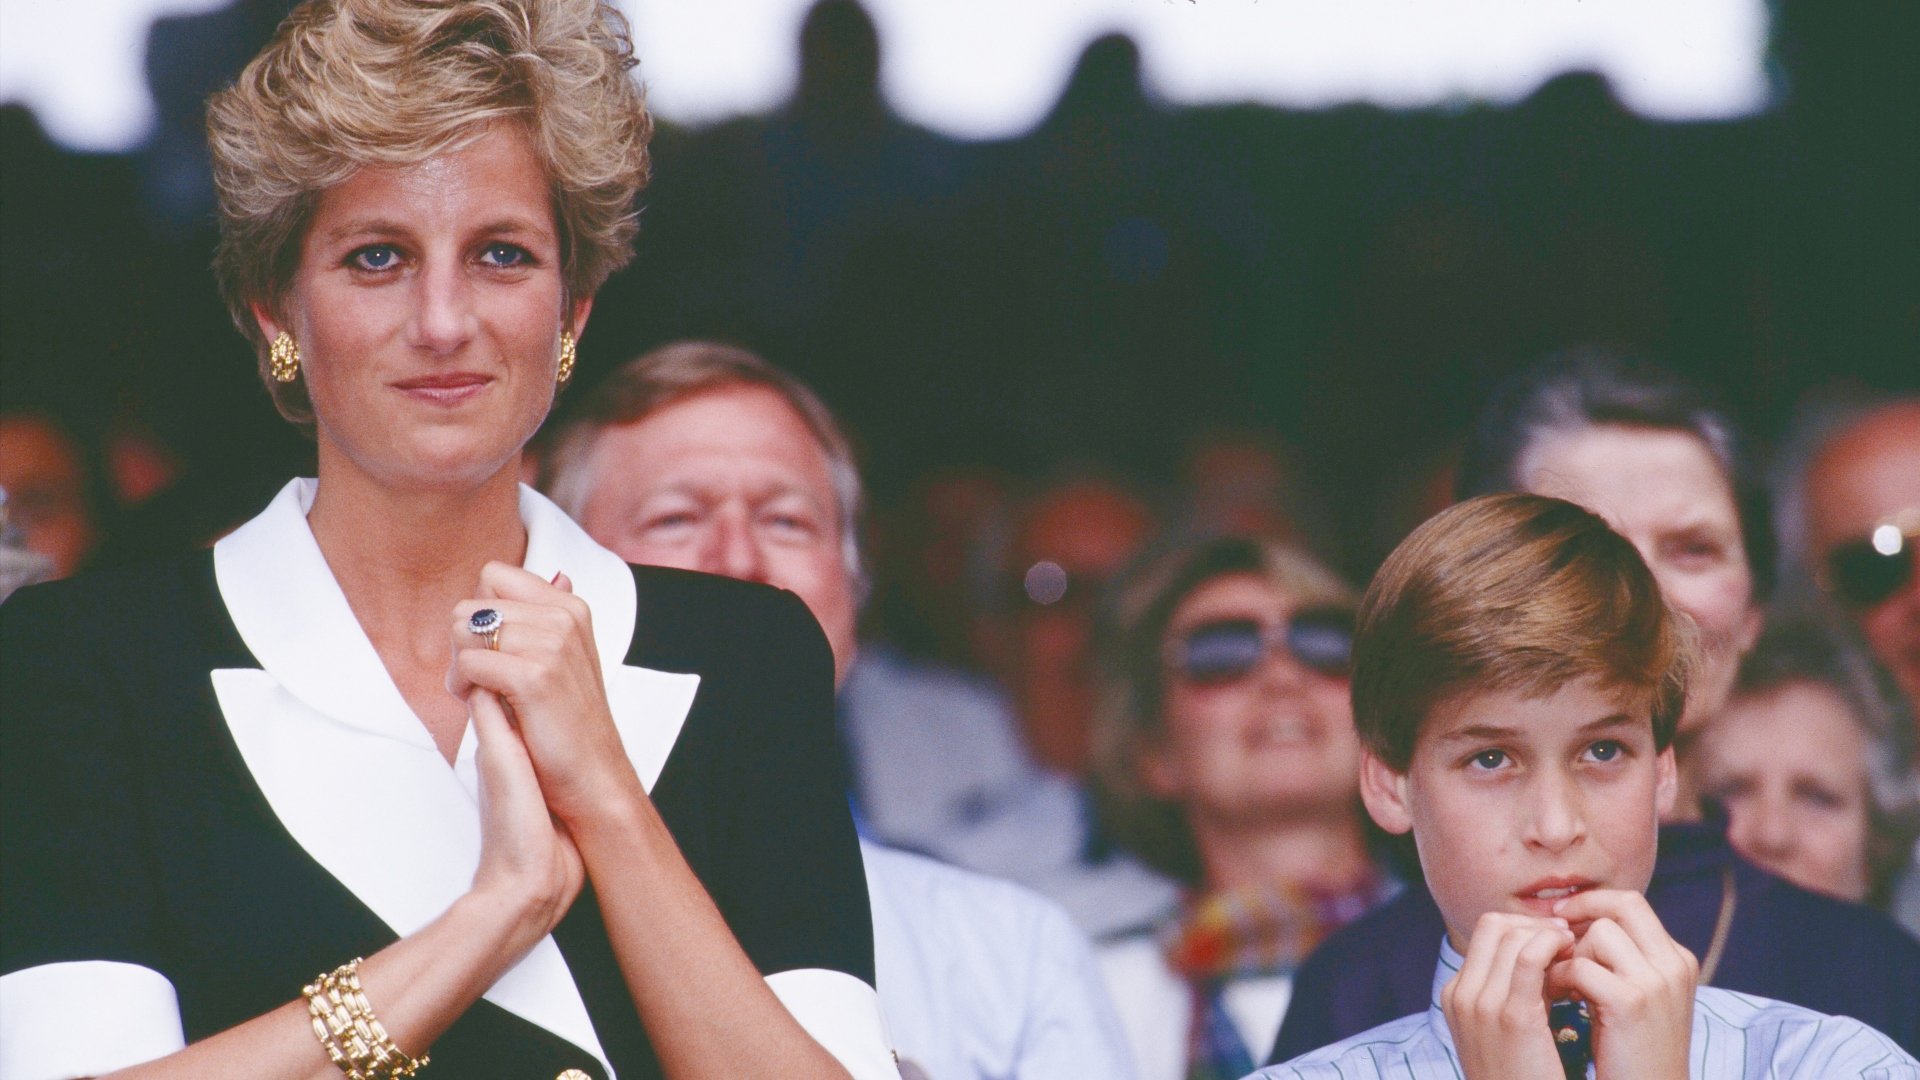 Prince William Opens Up About Losing His Mother, Princess Diana